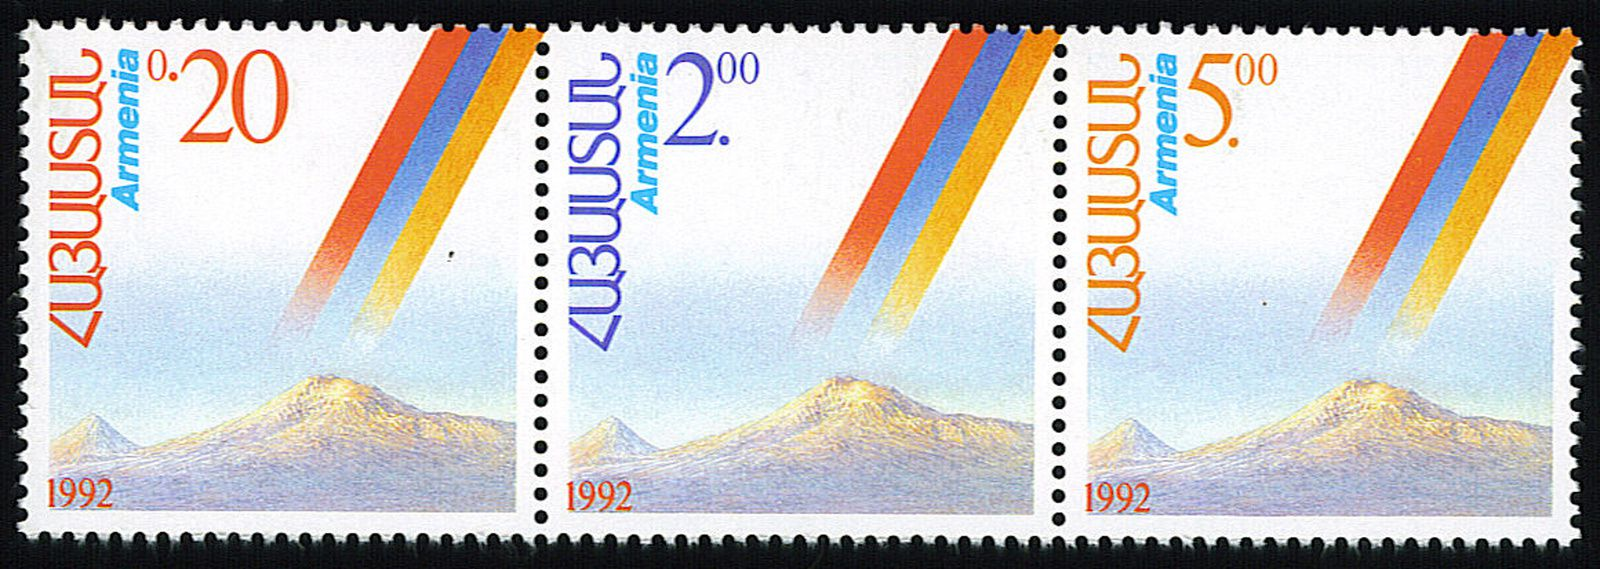 The first stamps issued after Independence, with Ararat (1992)